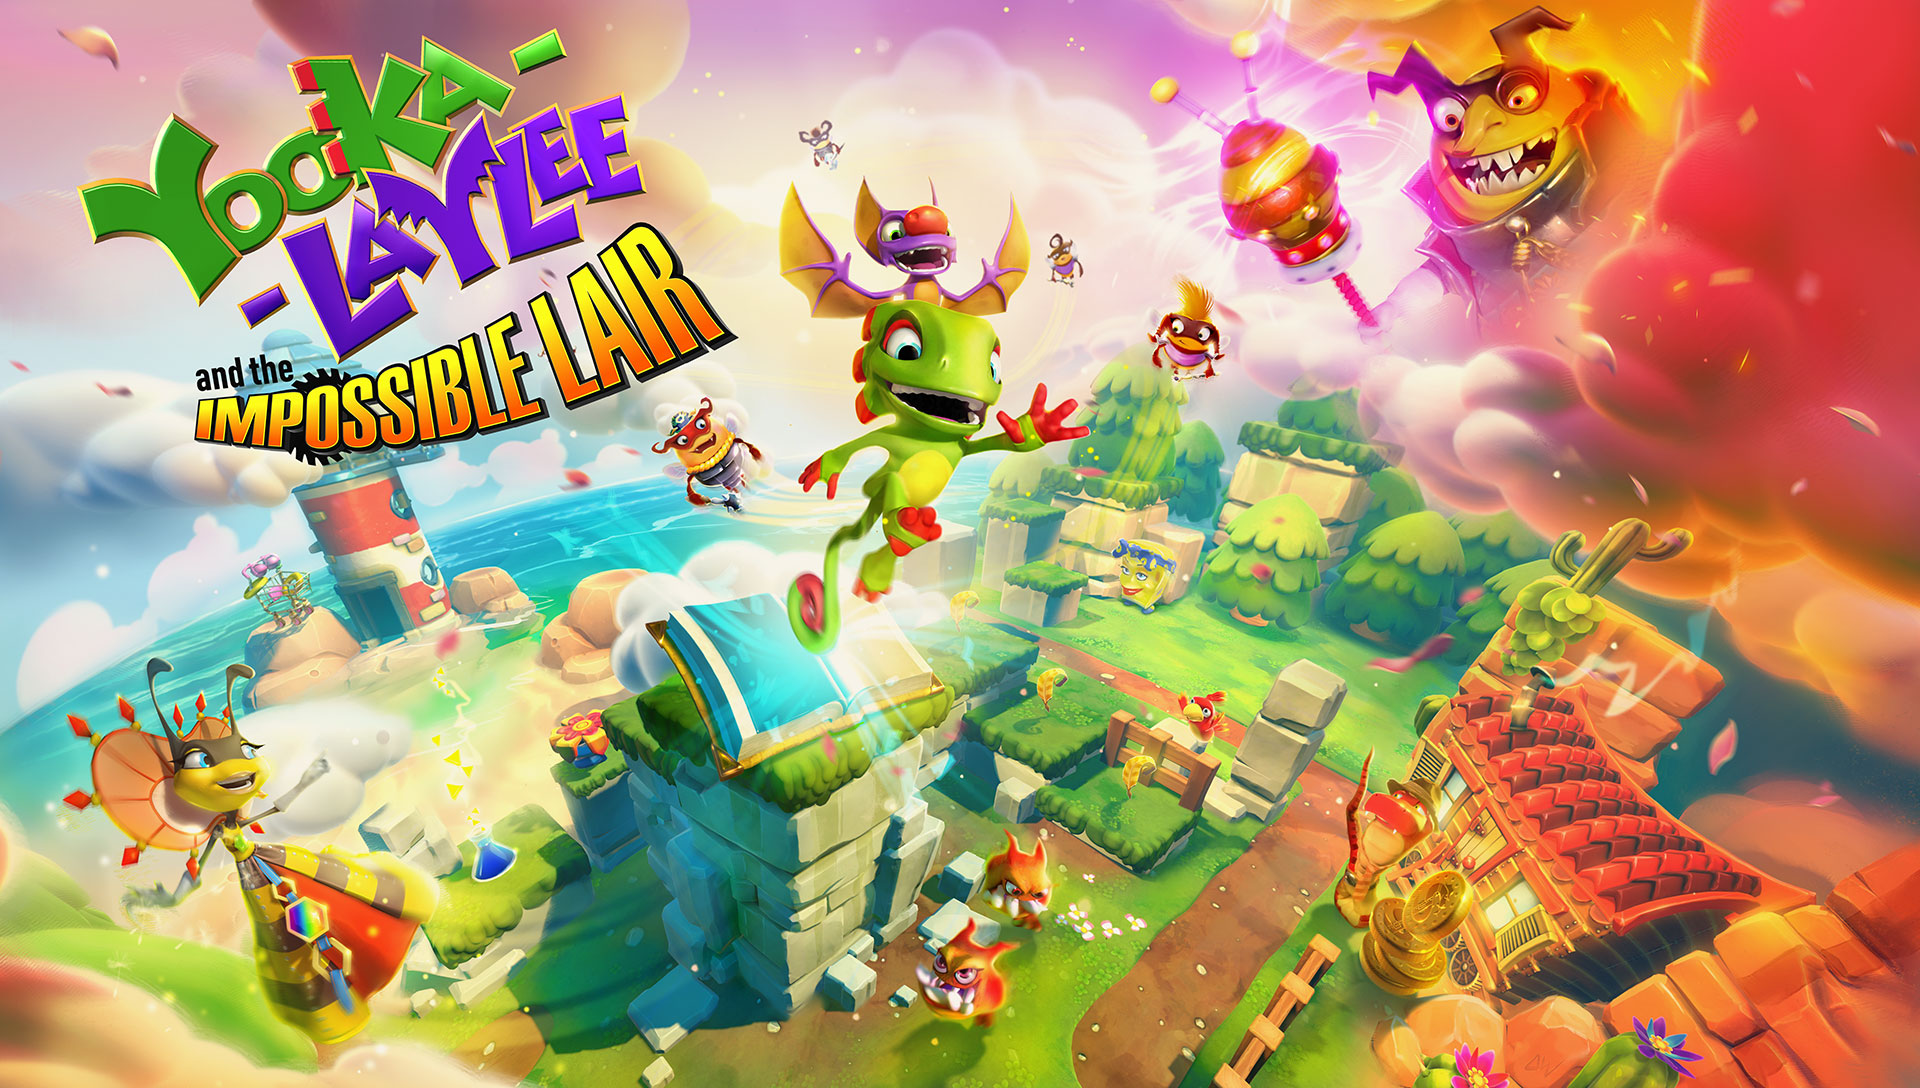 Trailer de Yooka Laylee and the Impossible Lair